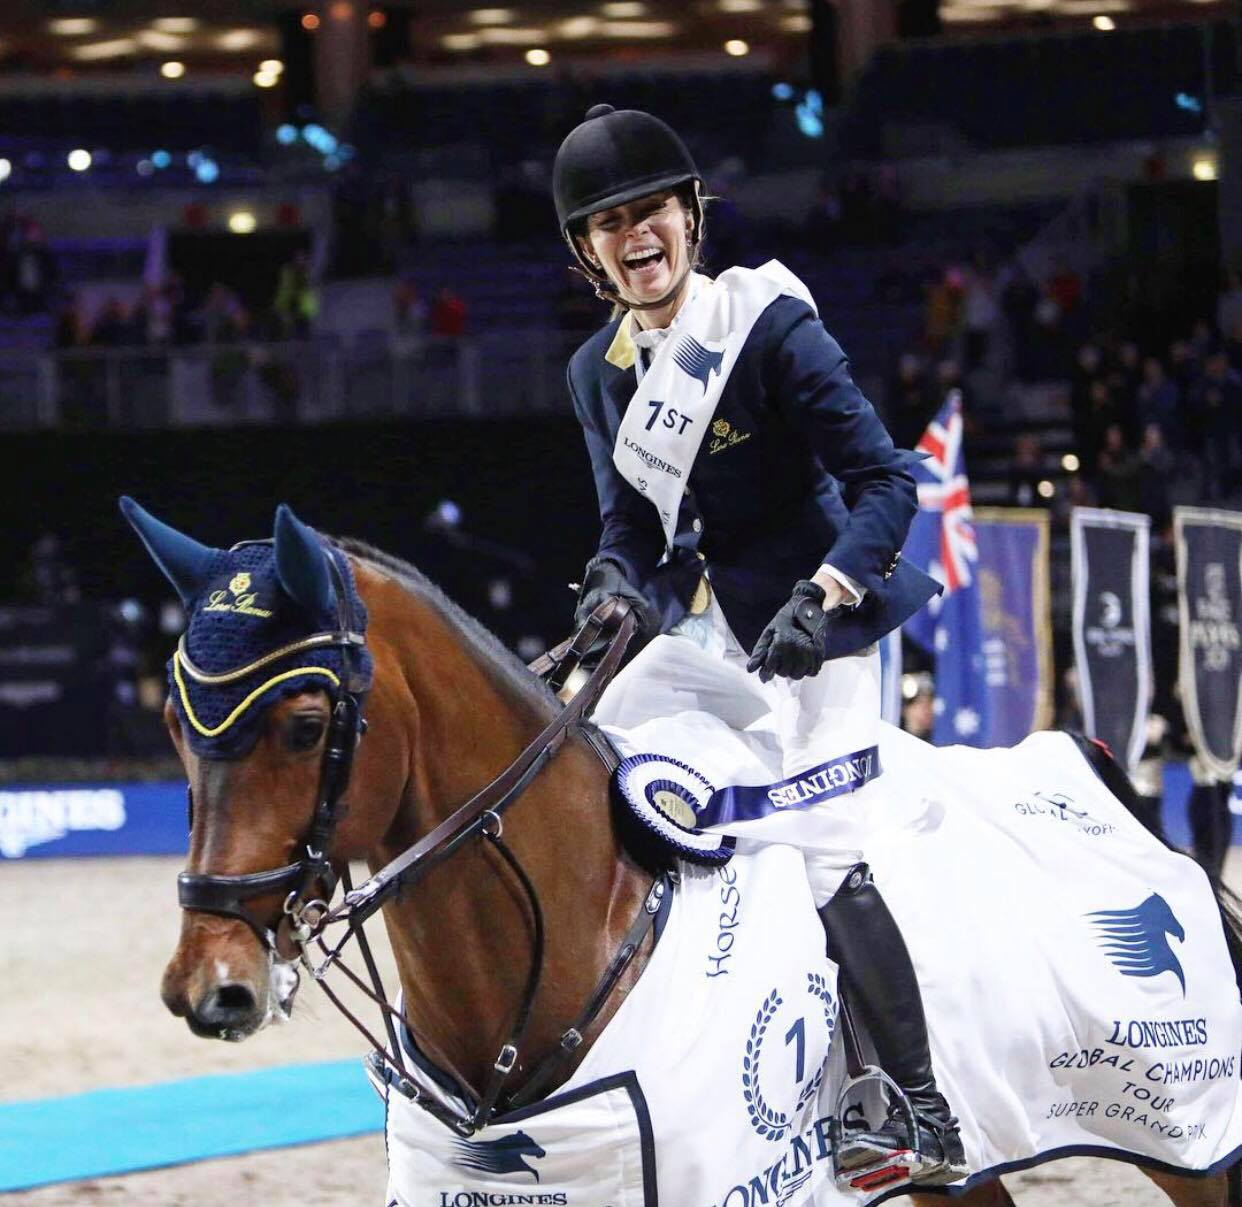 Edwina wins Super Grand Prix in Prague